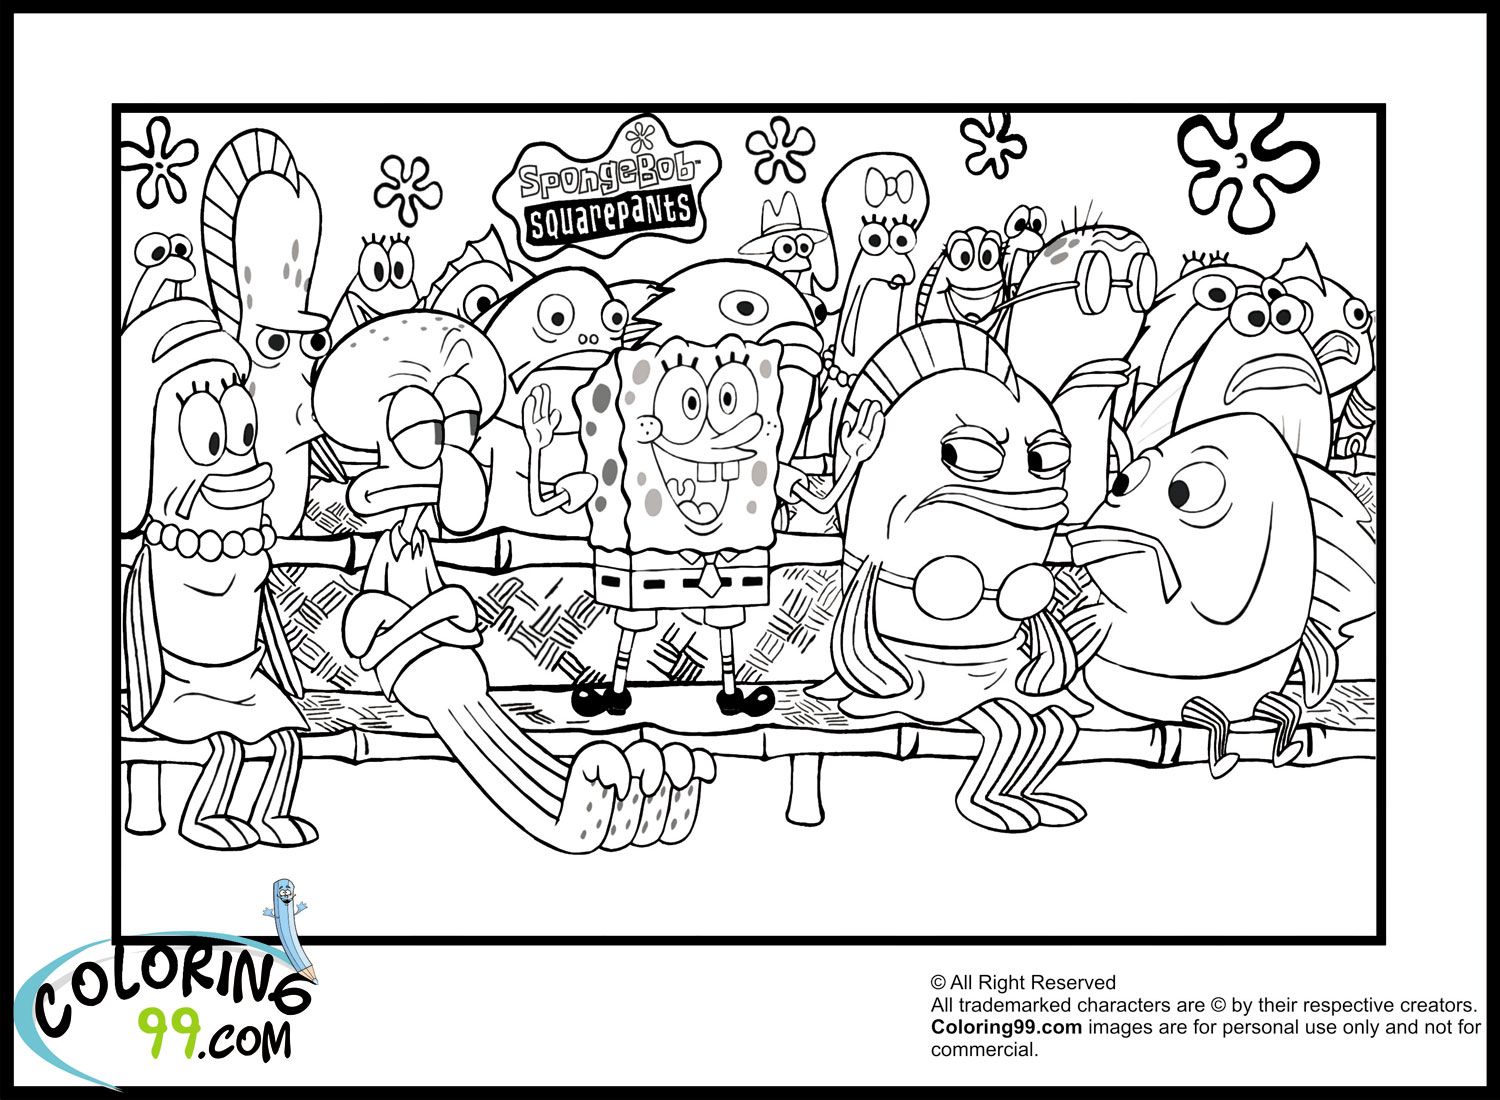 coloring pages of spongebob - february 2013 team colors